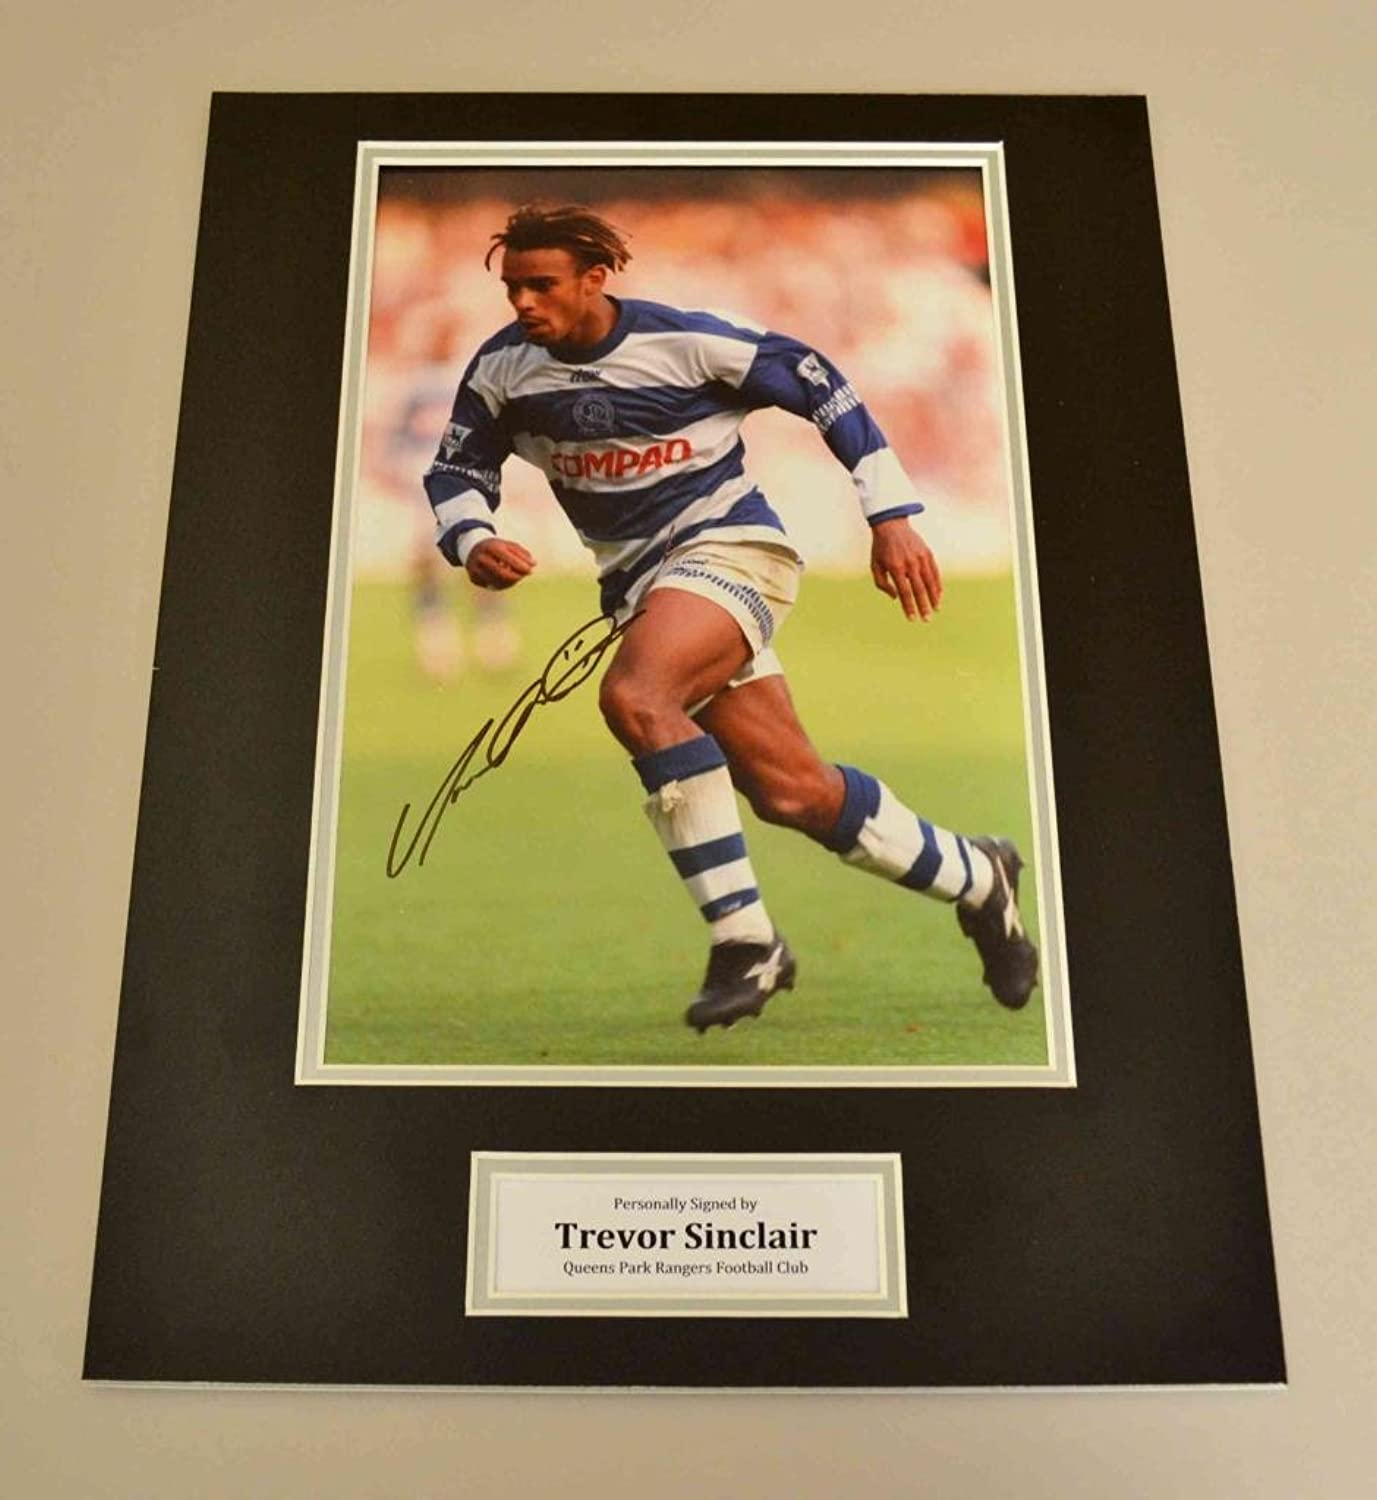 Trevor Sinclair Signed Photo 16x12 Display QPR Memorabilia Autograph + COA